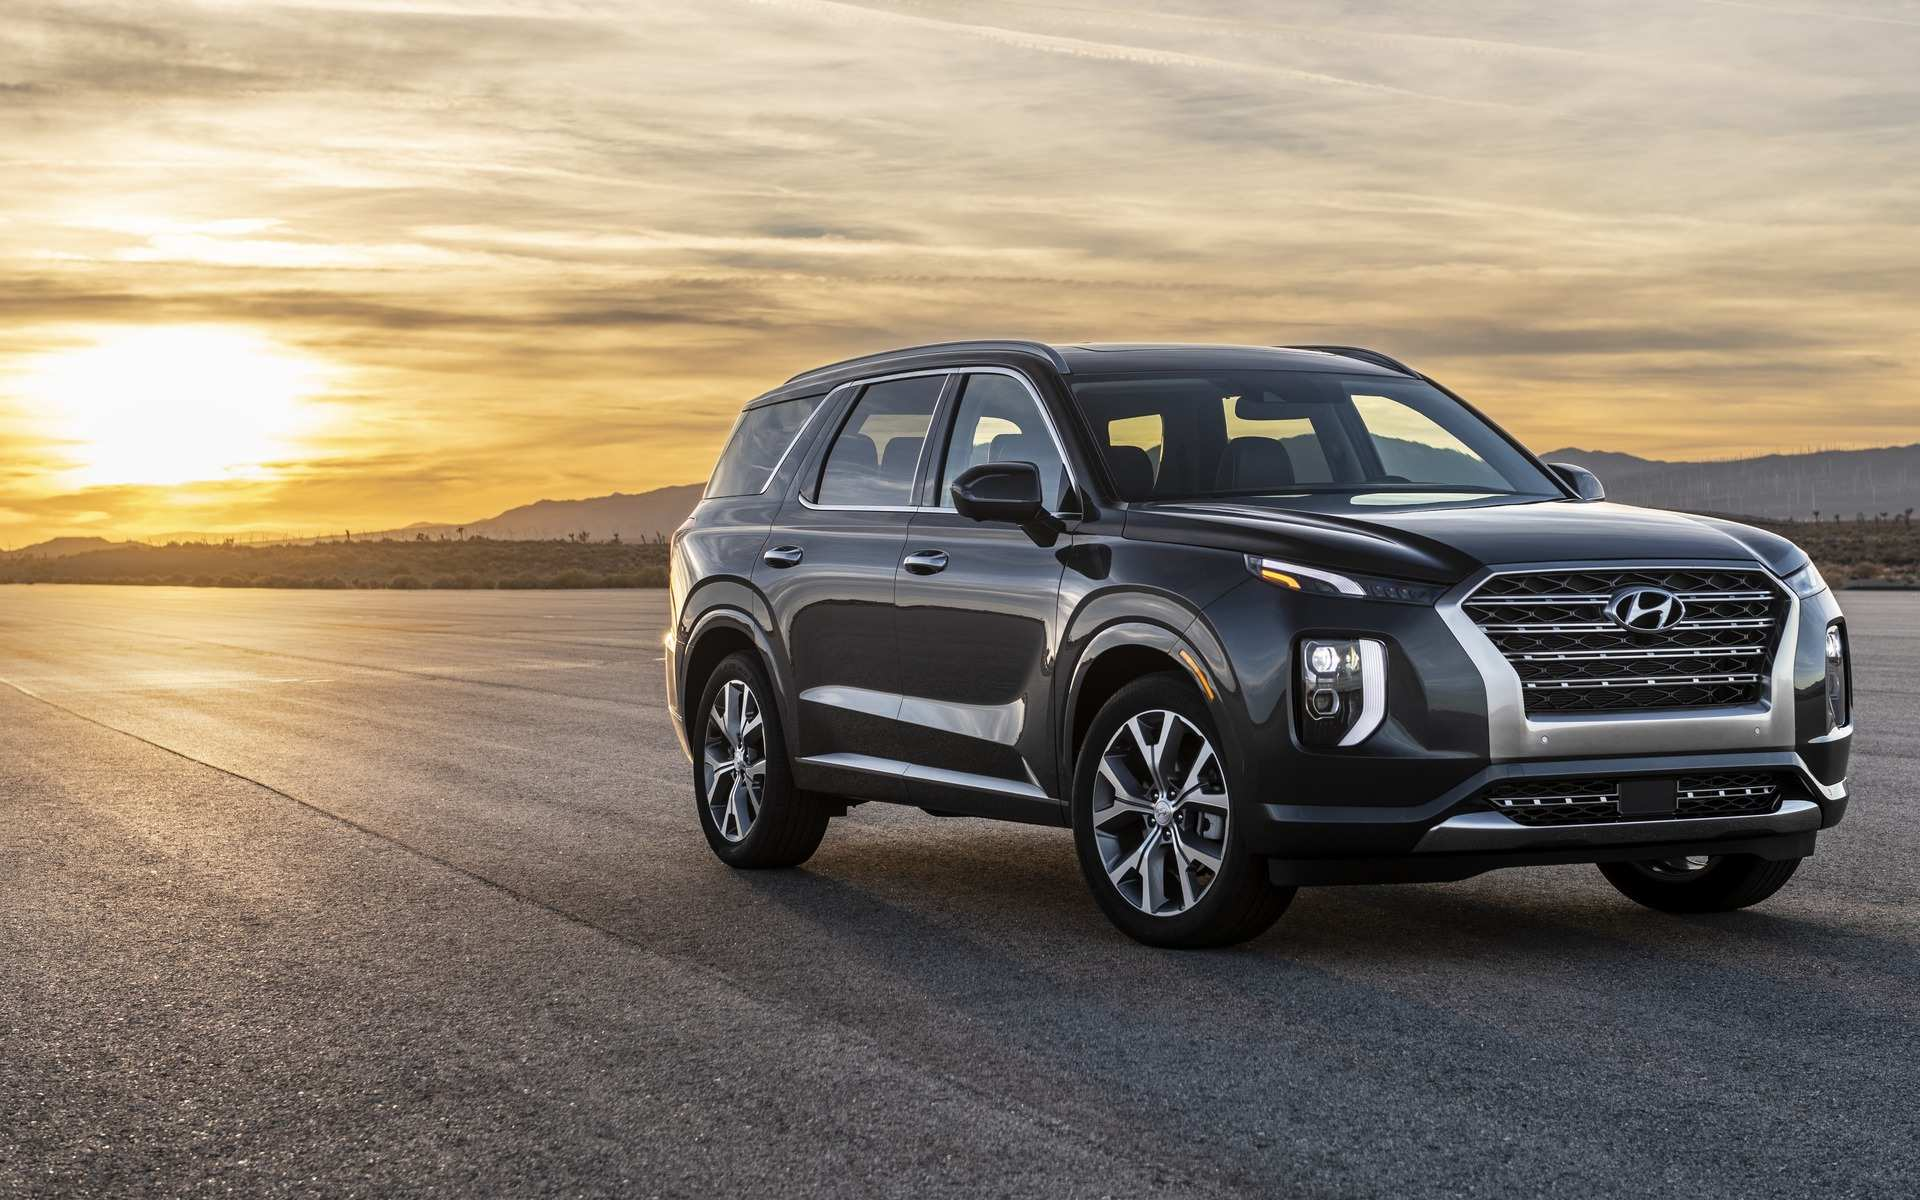 88 Great 2020 Hyundai Palisade Vs Kia Telluride Speed Test with 2020 Hyundai Palisade Vs Kia Telluride